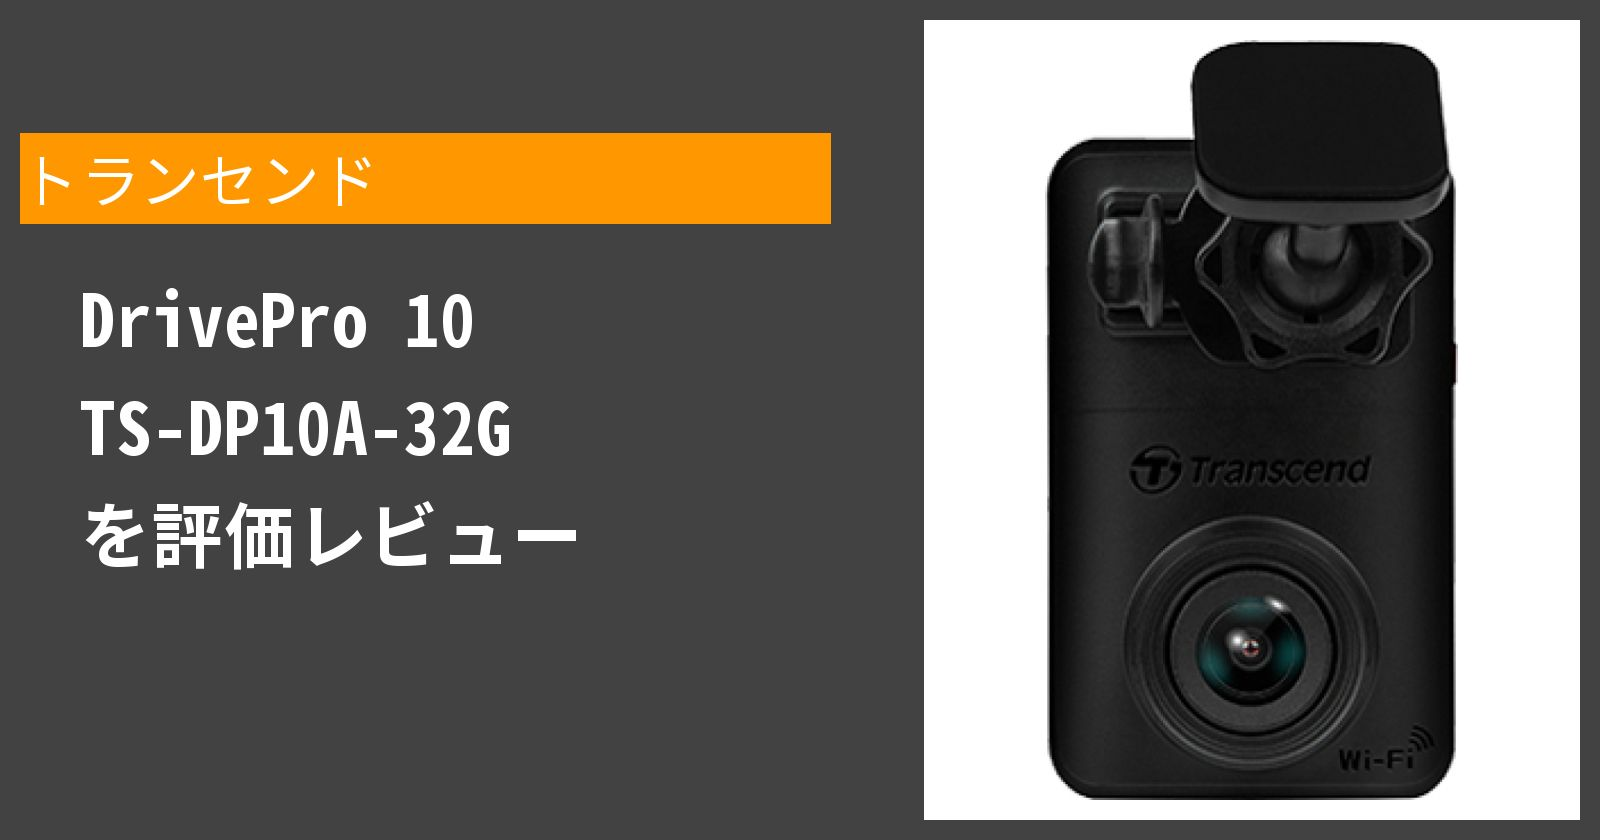 DrivePro 10 TS-DP10A-32Gを徹底評価